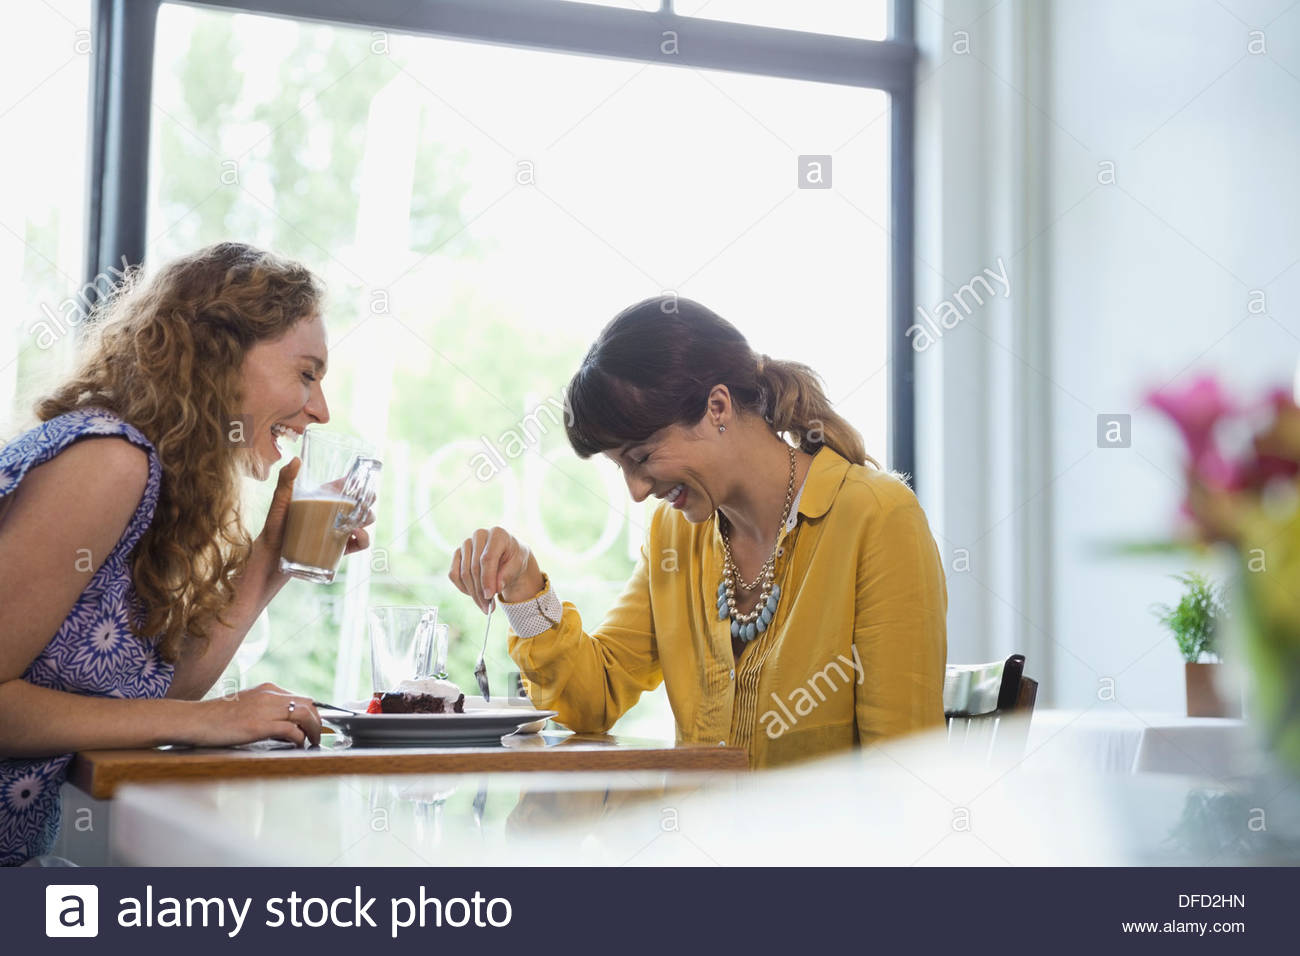 Cheerful female friends laughing in restaurant Photo Stock